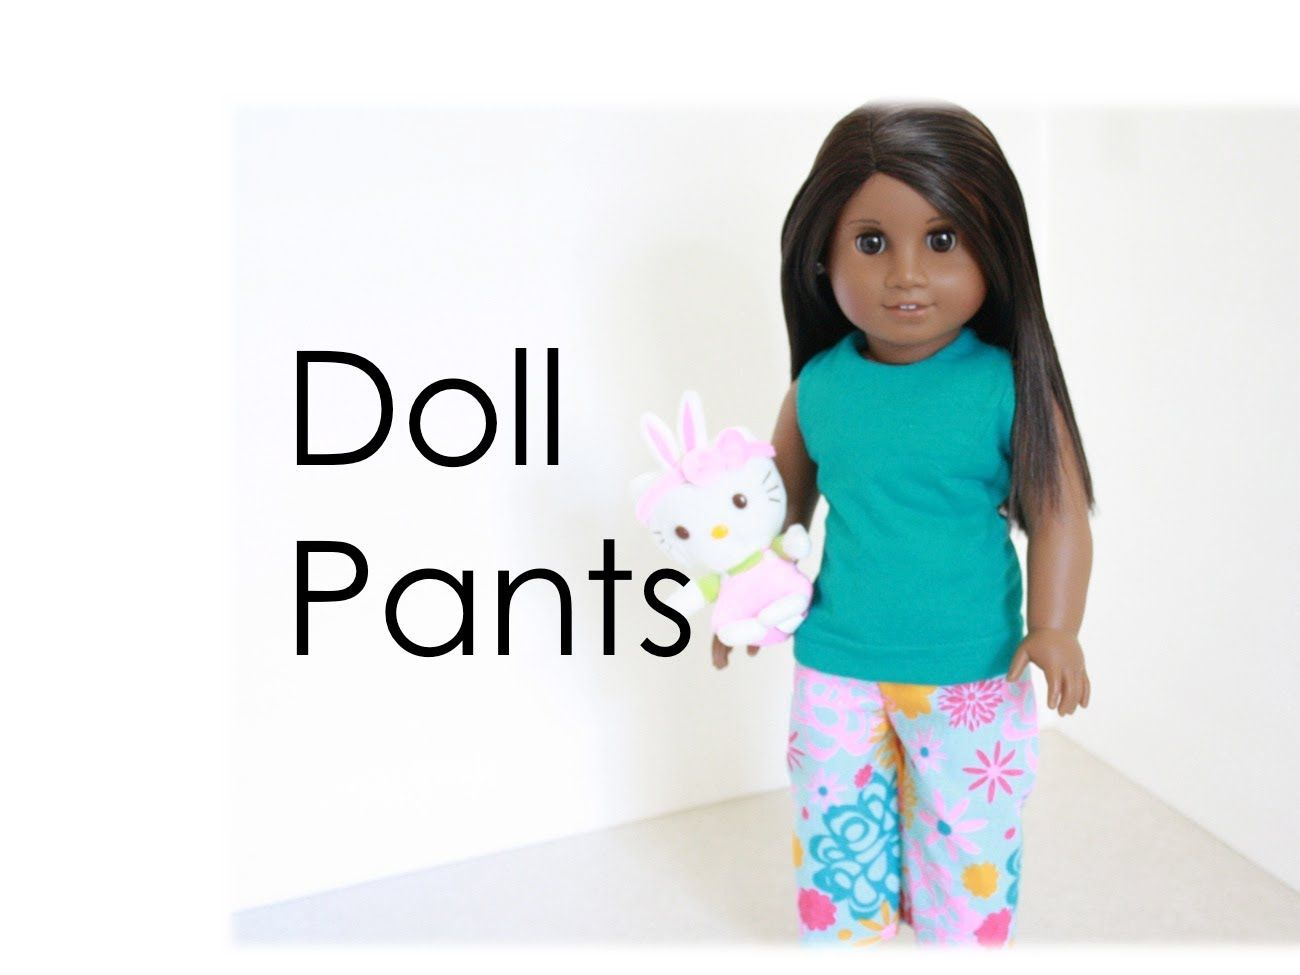 doll's pants,,,by request: reloaded - great beginning sewing project check us out at: http://www.myfroggystuff.blogspot.com facebook : http://www.facebook.com/pages/My-Frog...